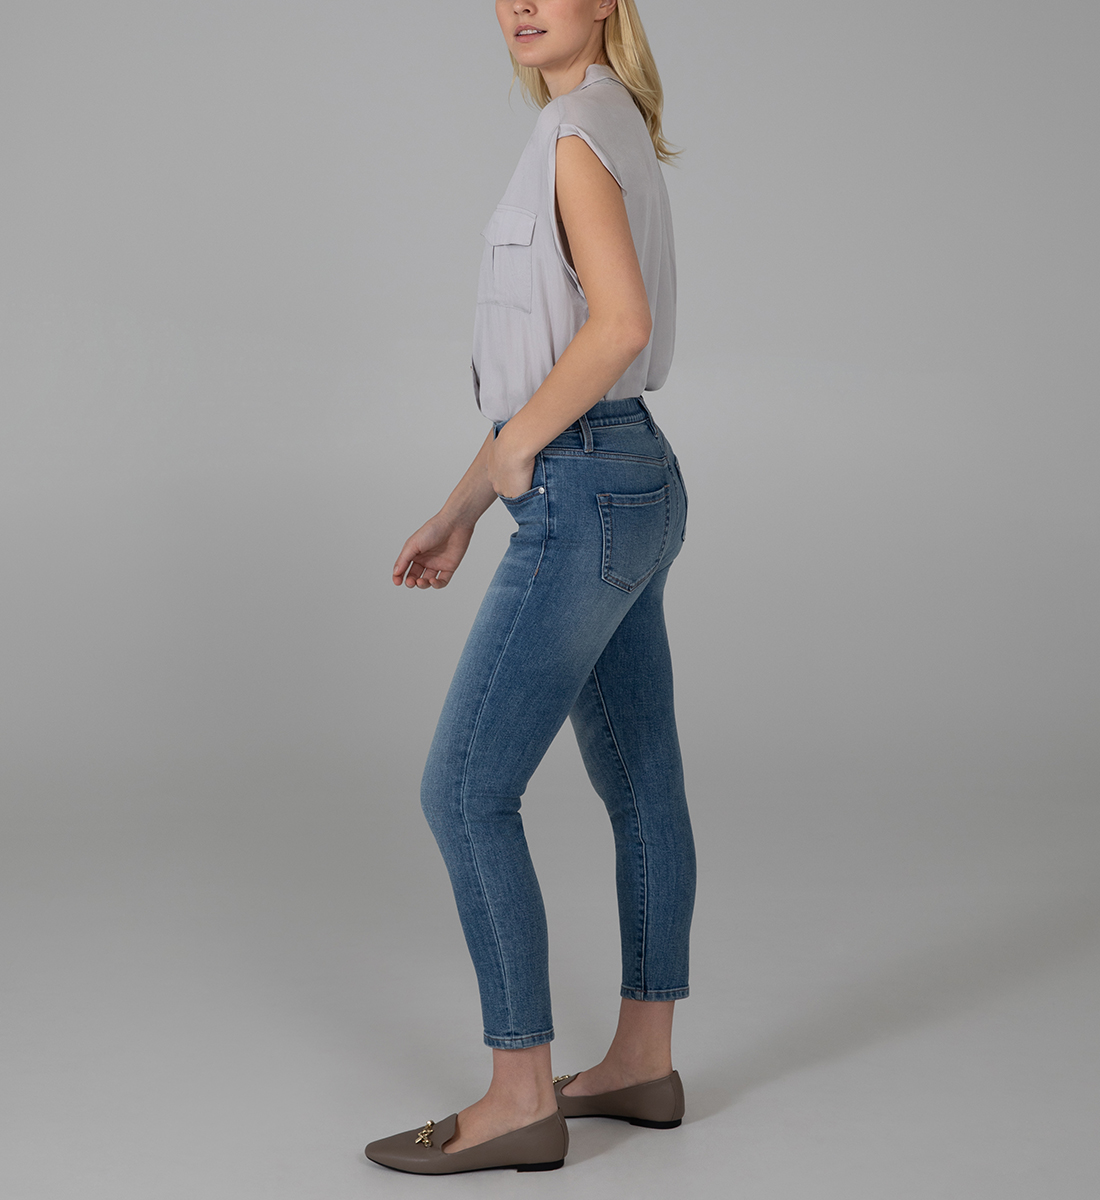 Valentina High Rise Crop Pull-On Jeans, , hi-res